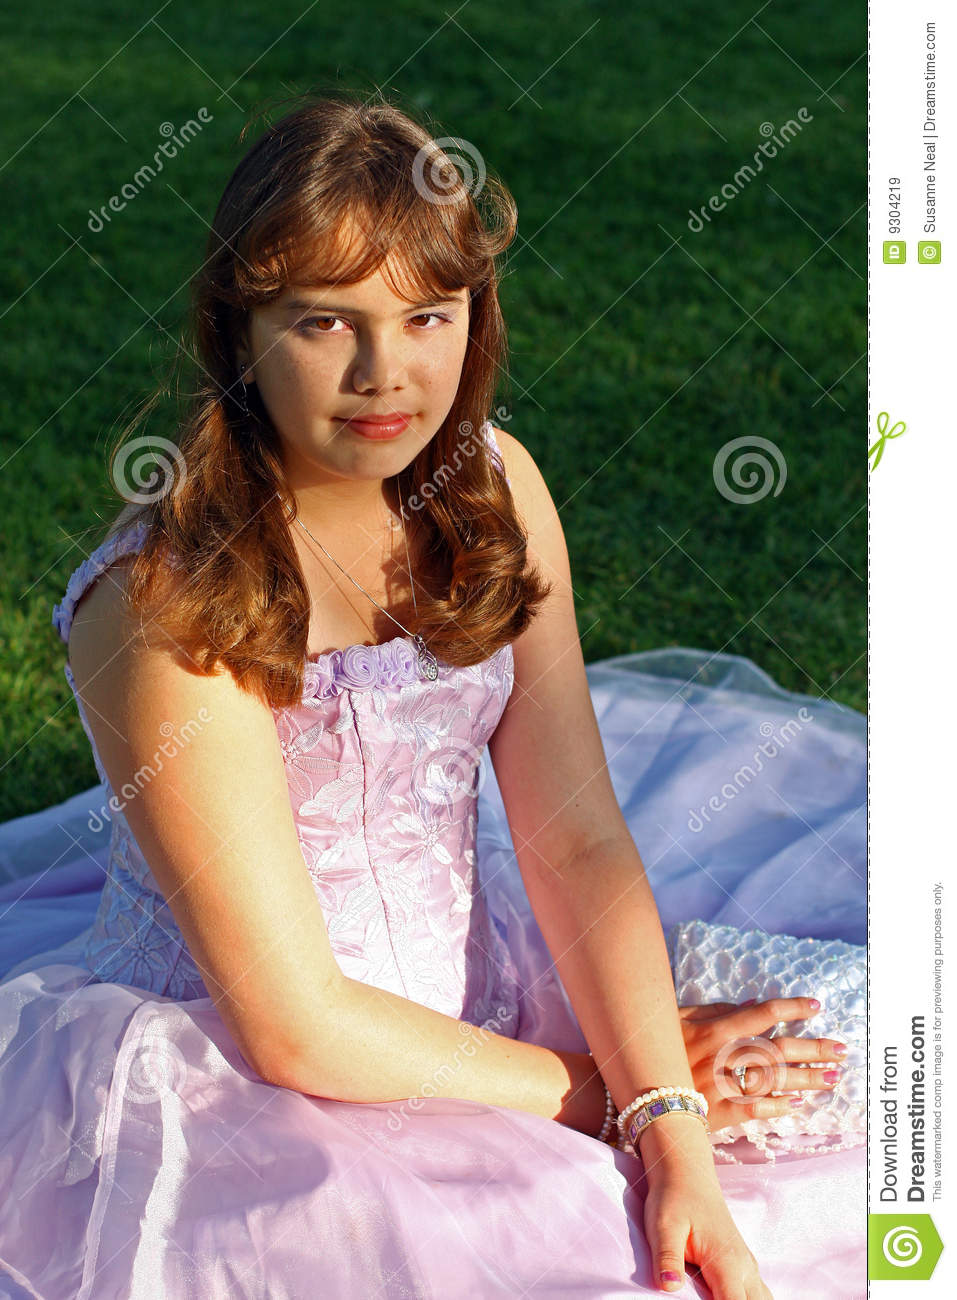 Https Www Dreamstime Com Royalty Free Stock Images Teenage Girl Party Prom Dress Image9304219